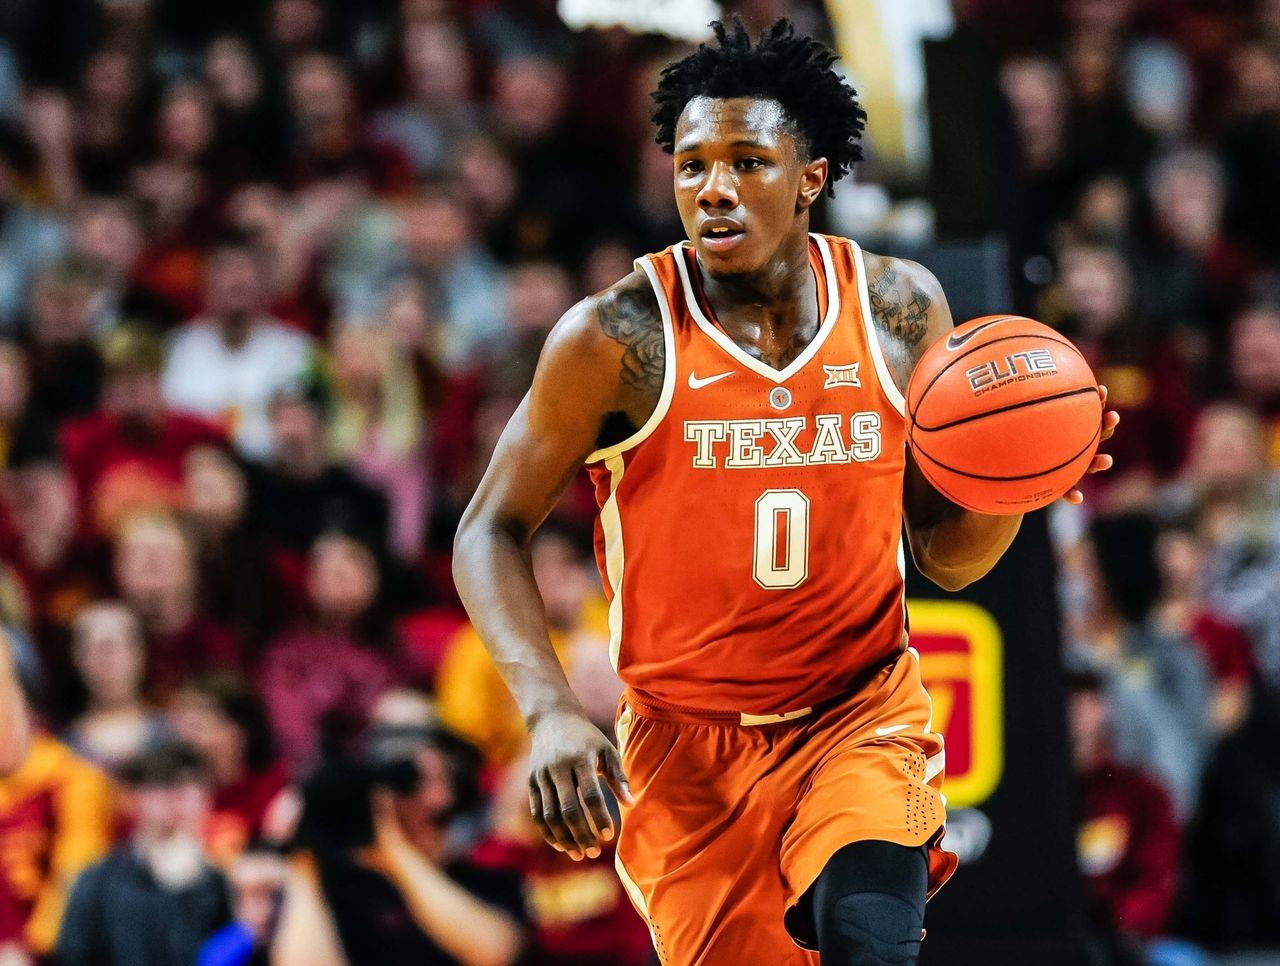 Cropped_2017-01-08t045752z_1393354219_nocid_rtrmadp_3_ncaa-basketball-texas-at-iowa-state